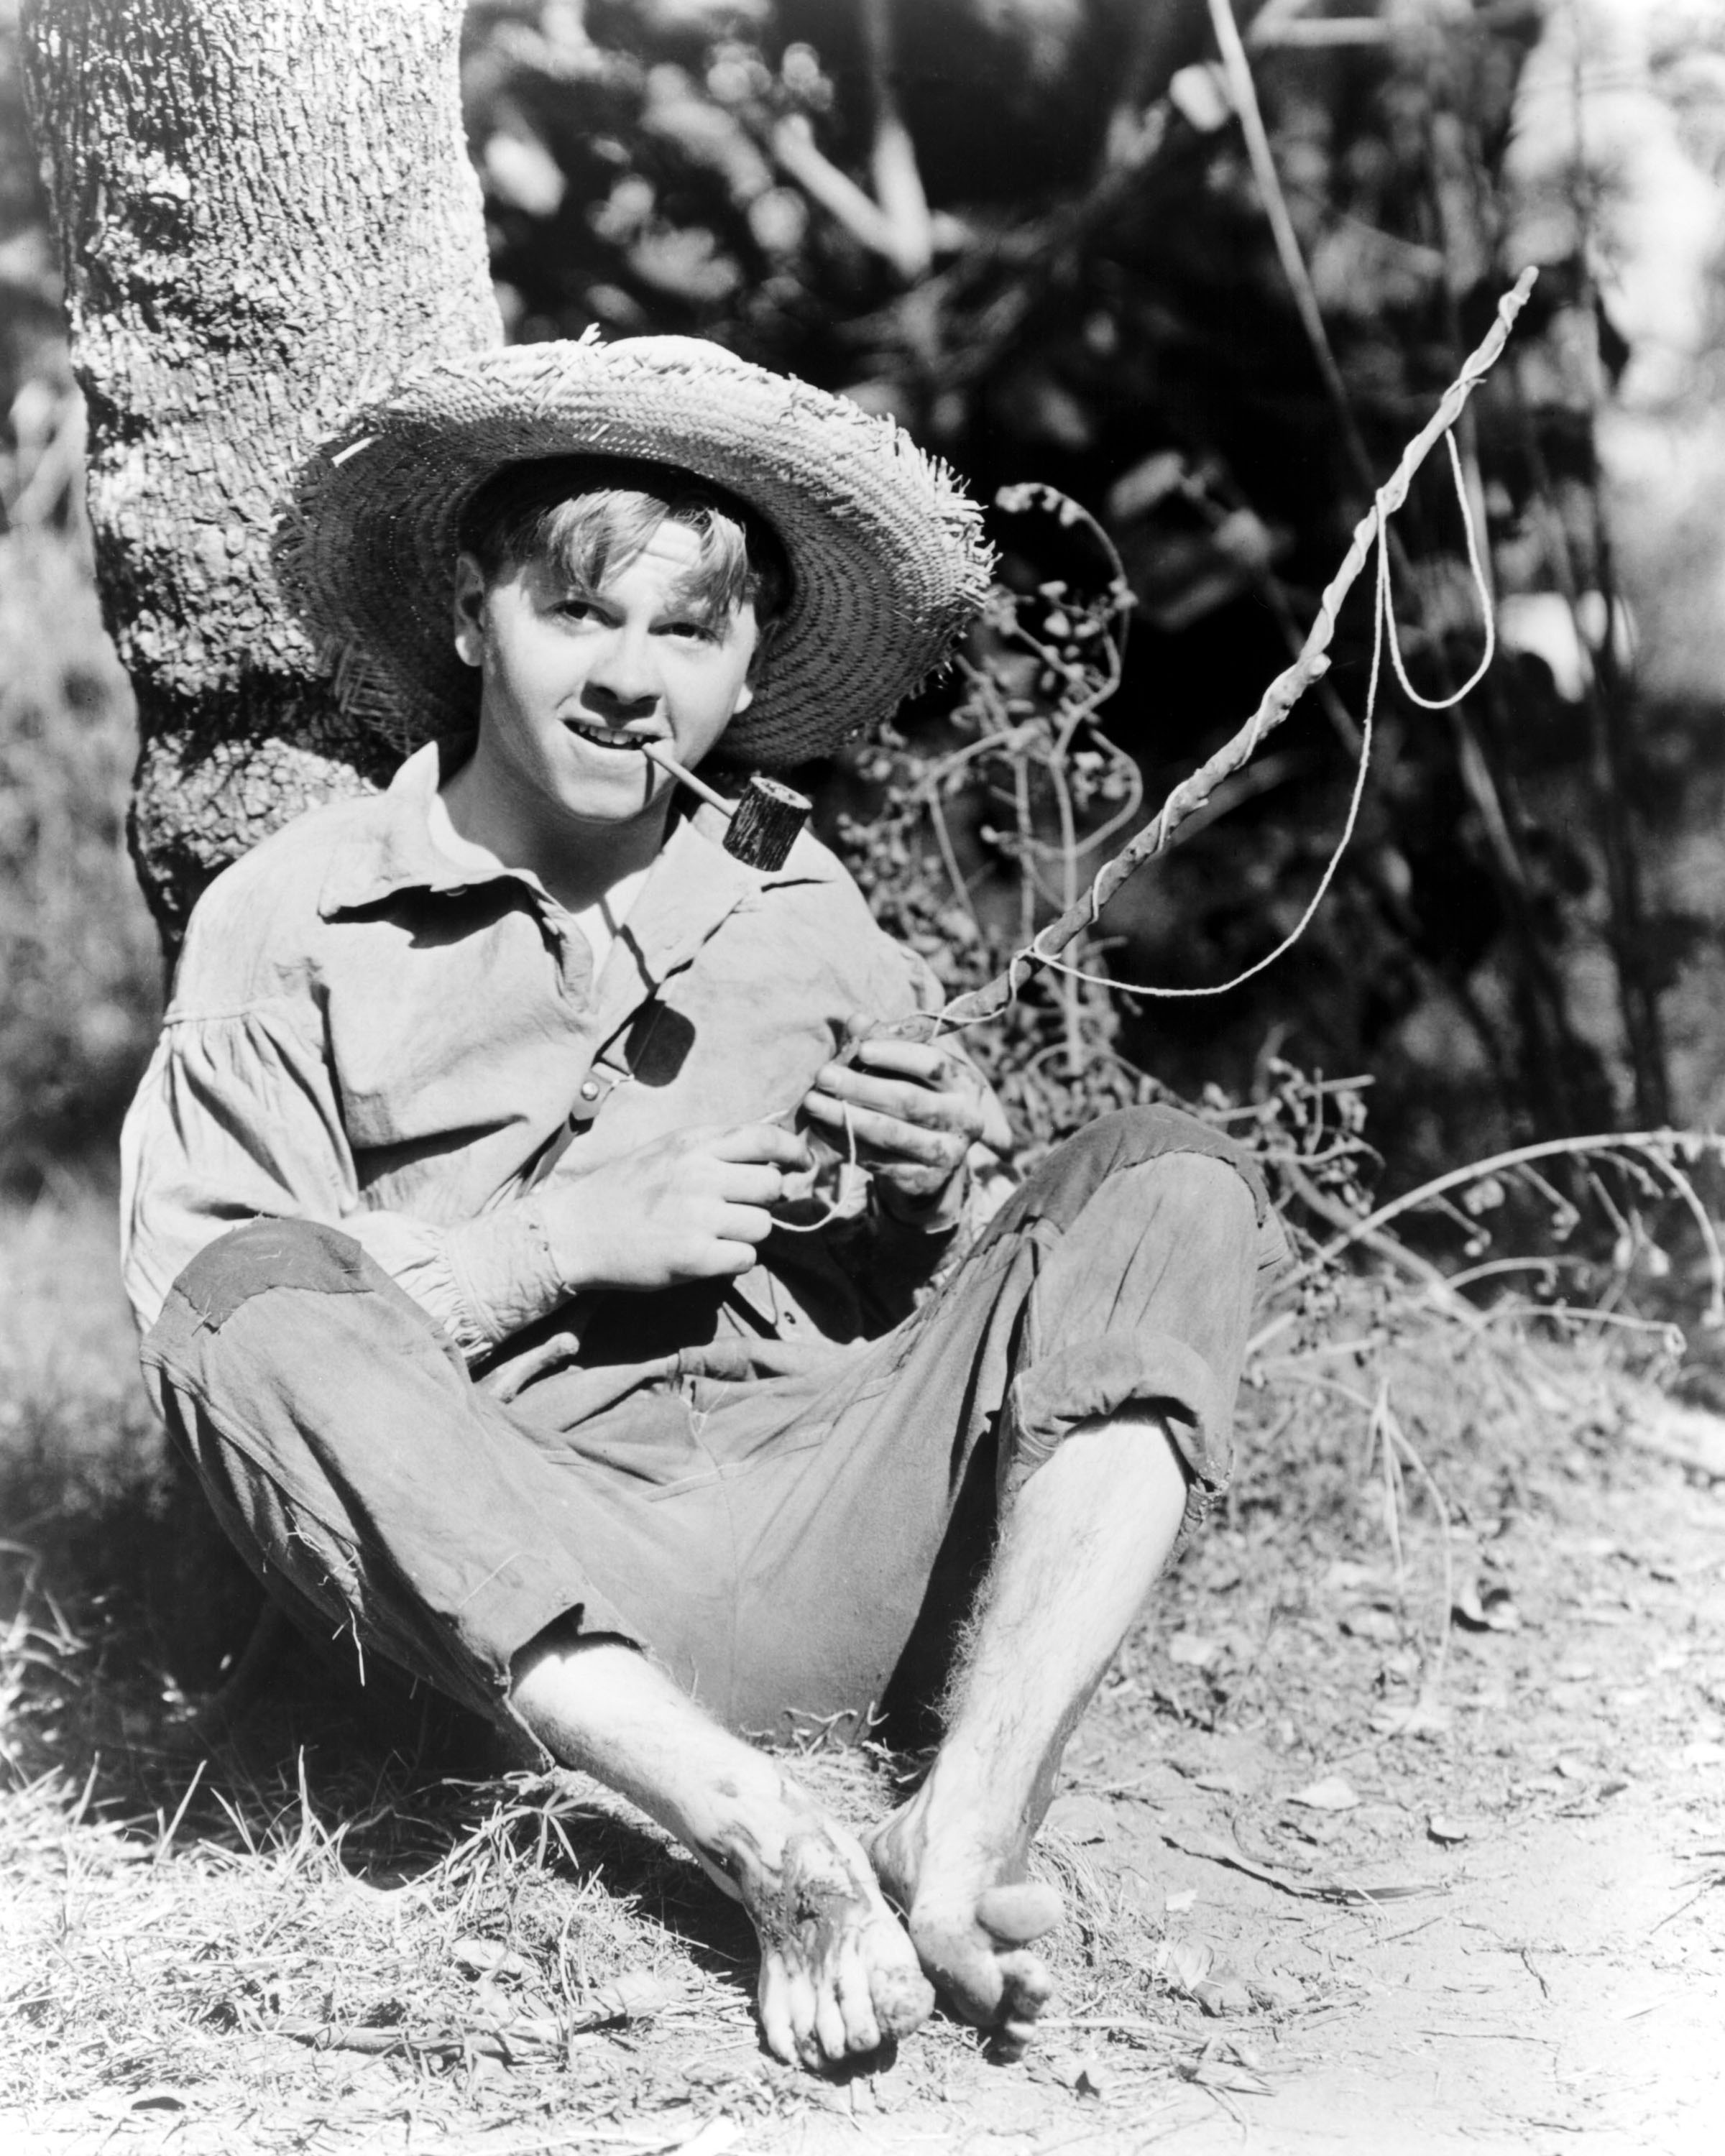 Rooney, as Huckleberry Finn, in <i>The Adventures of Huckleberry Finn</i>, directed by Richard Thorpe, in 1939.